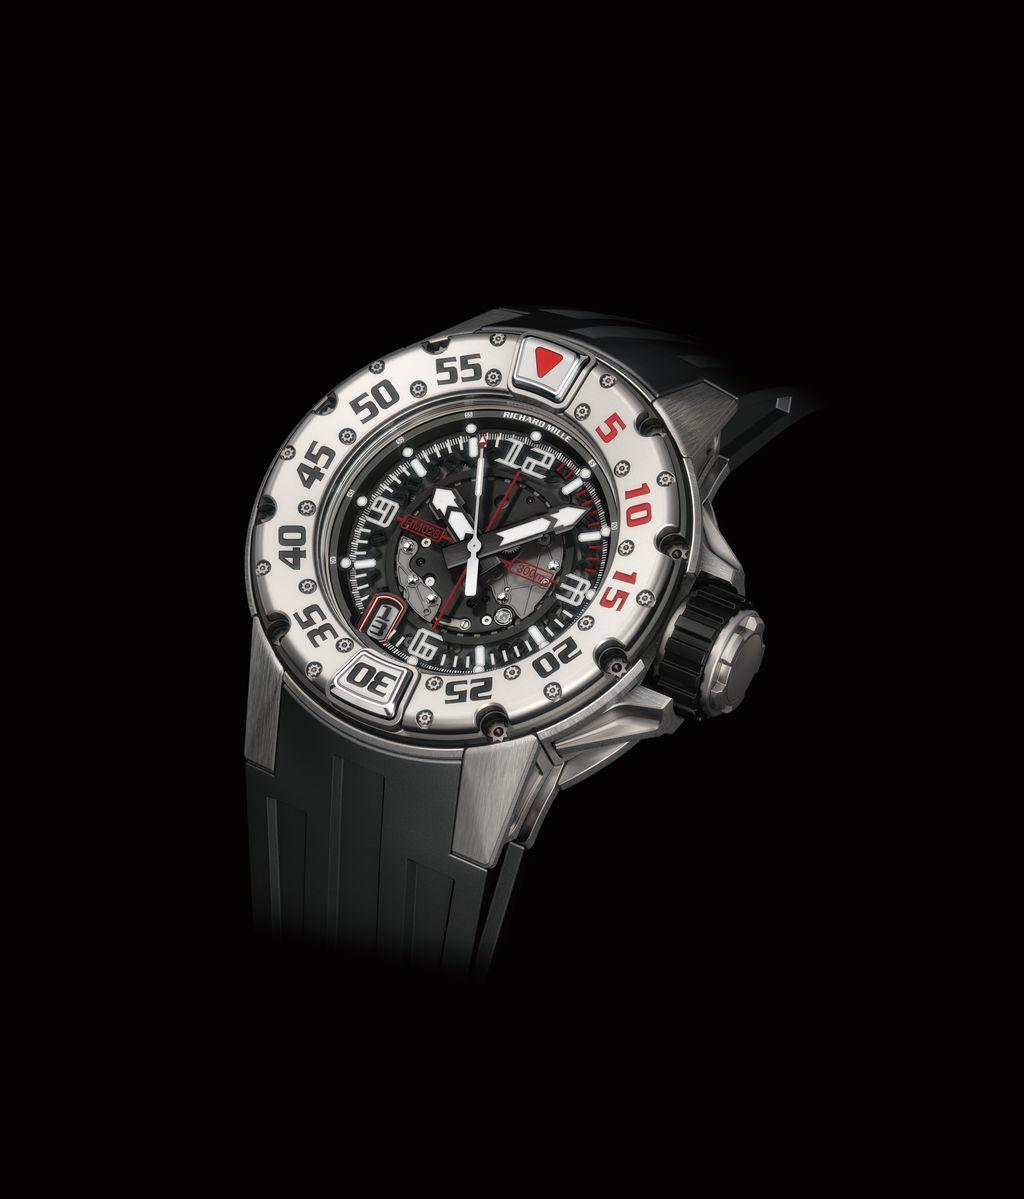 RM 028 Diver's Watch